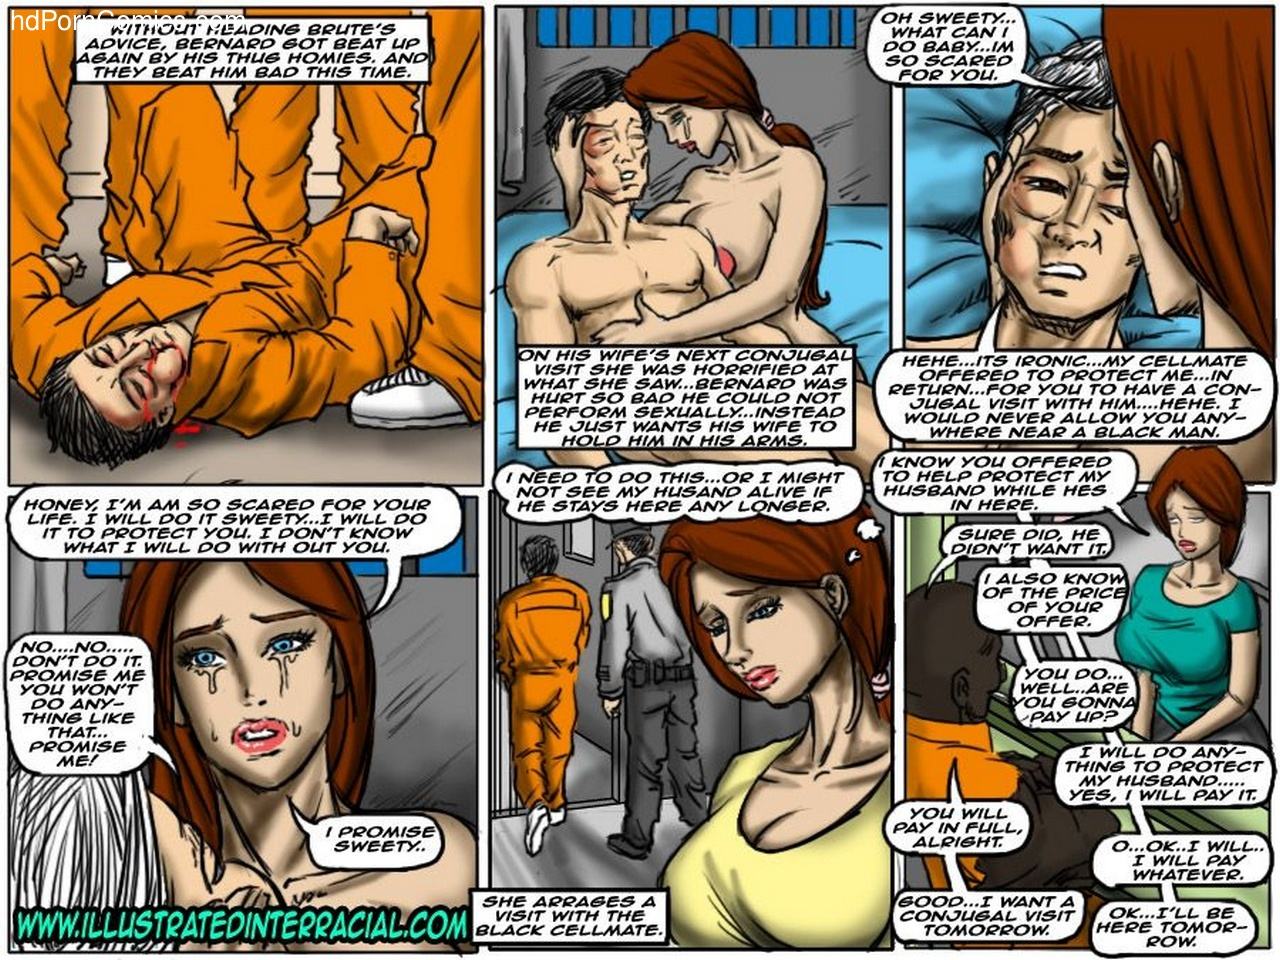 cheating wife illustrated erotic stories